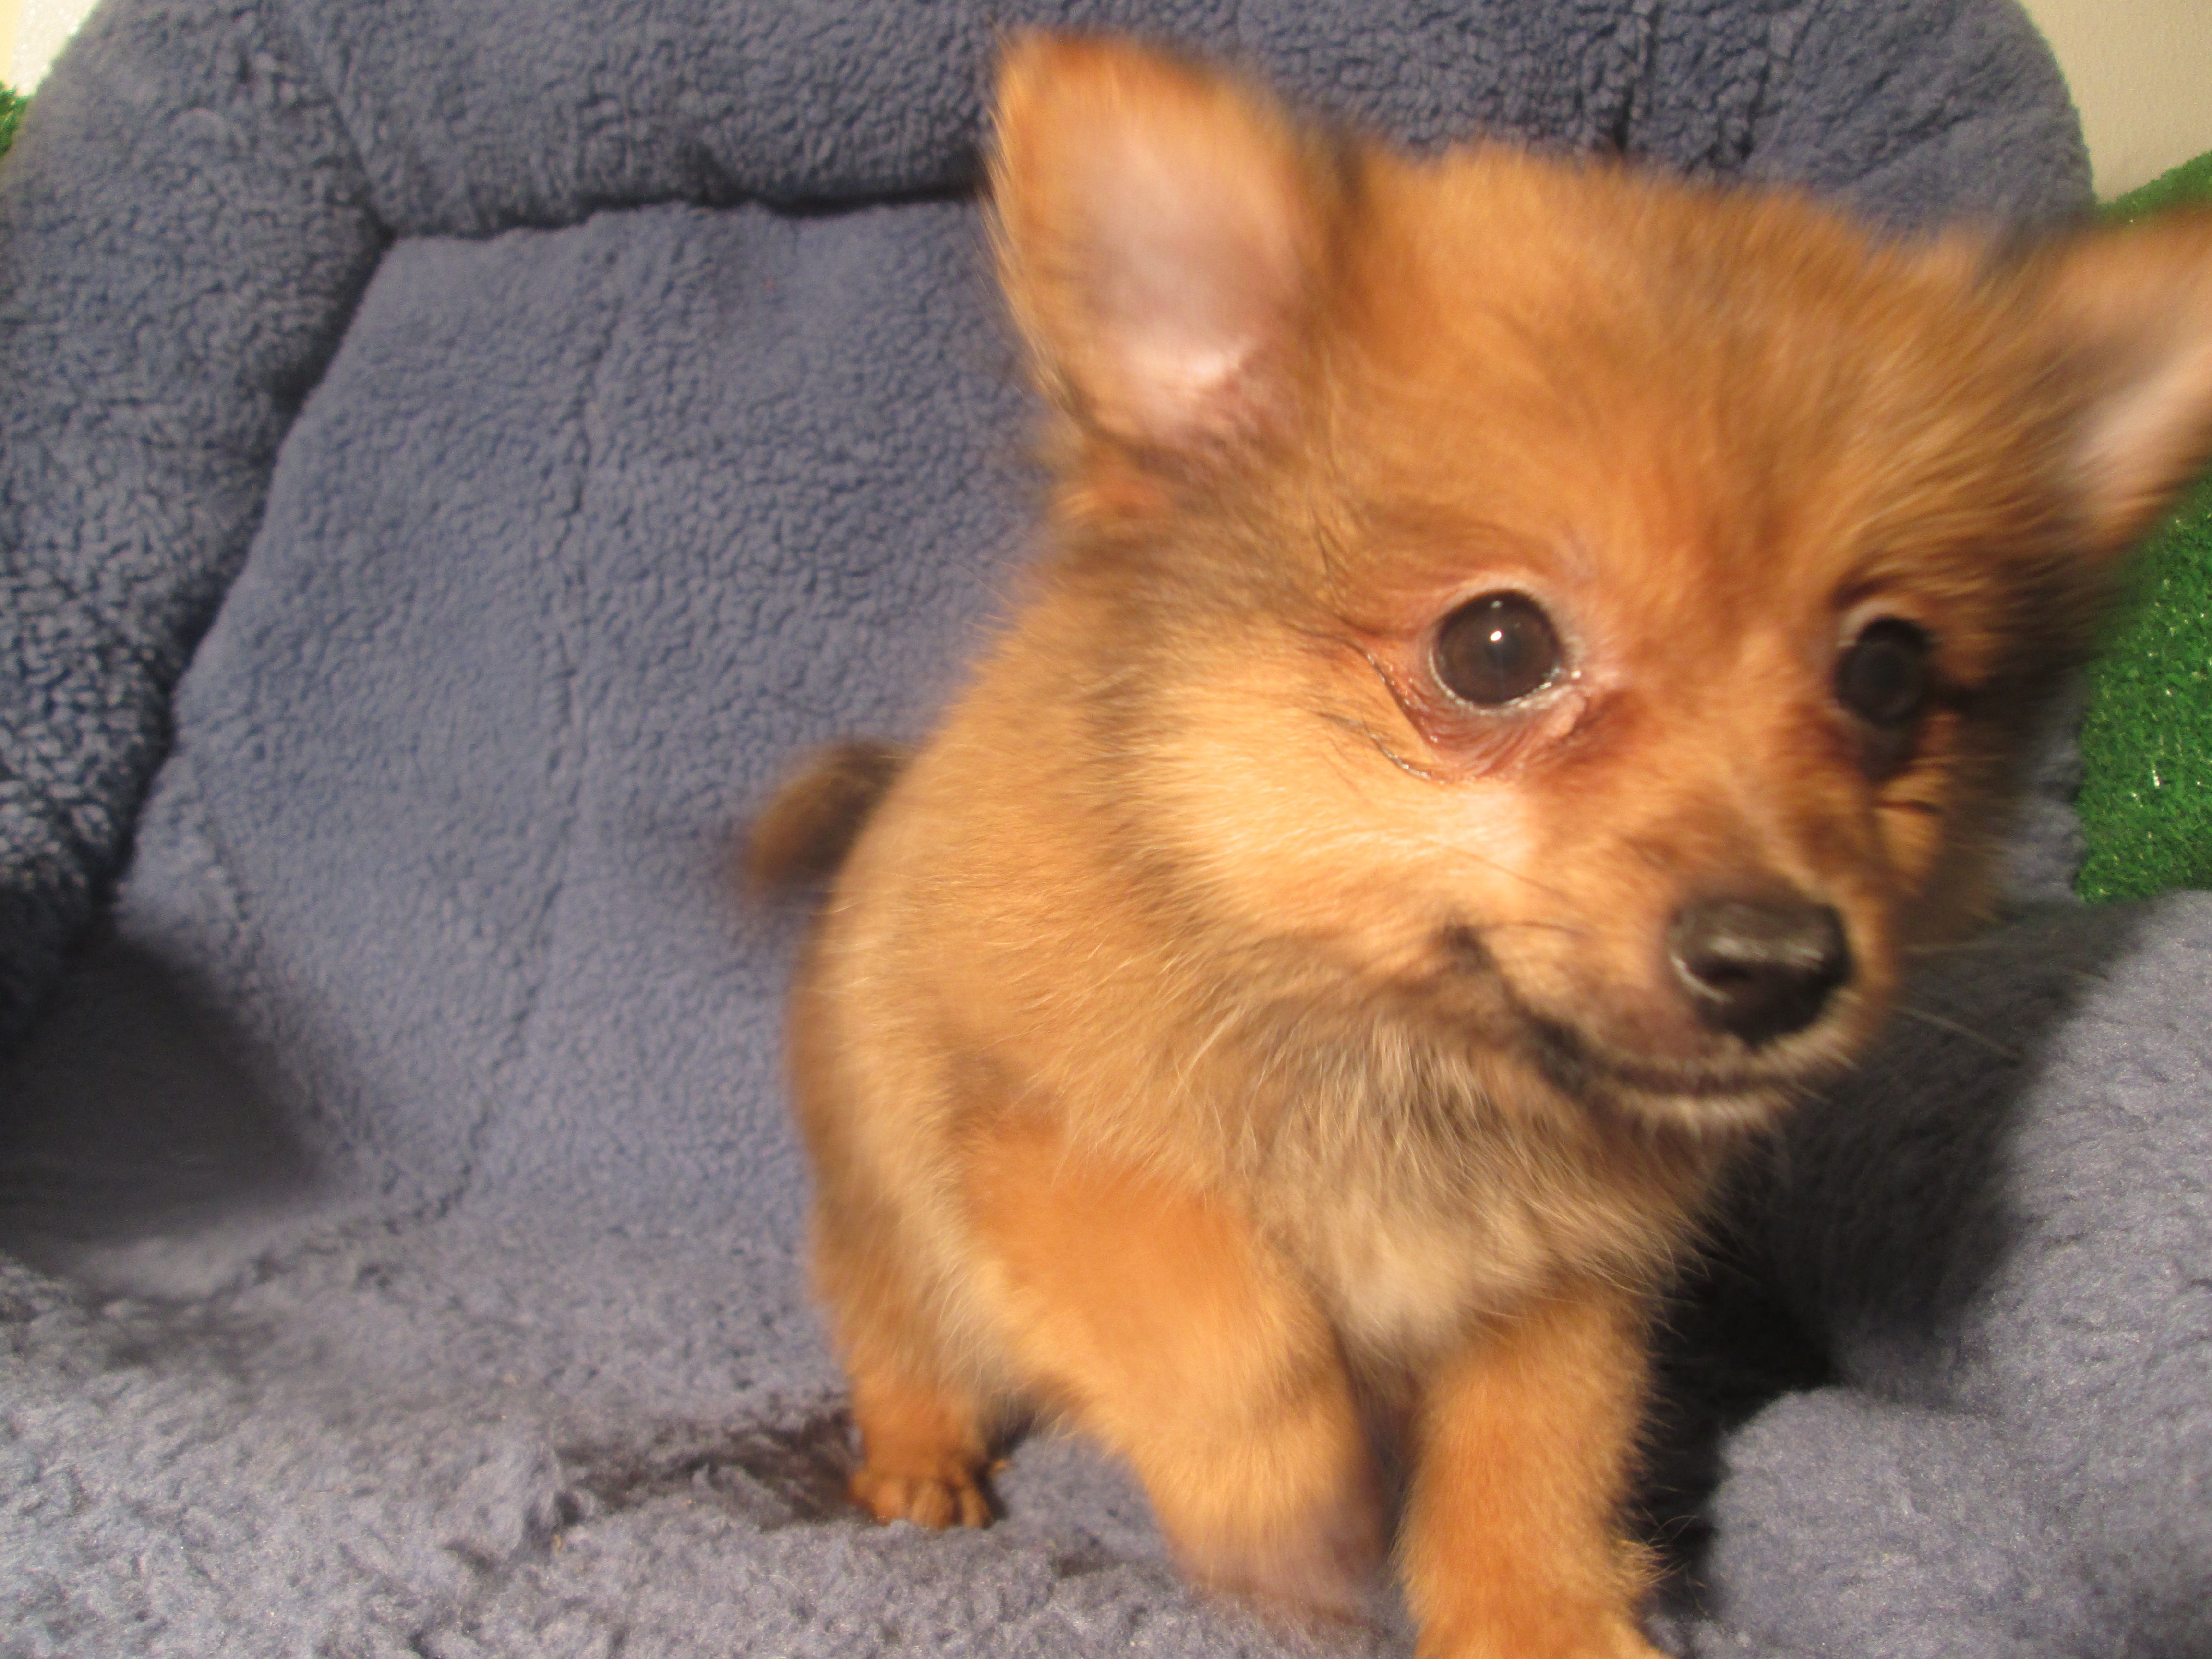 Precious Pomeranian Puppies Available 8 12 Weeks Of Age Permanent Shots And Wormings Completed Along With Microch Puppies Pomeranian Puppy Dog Training